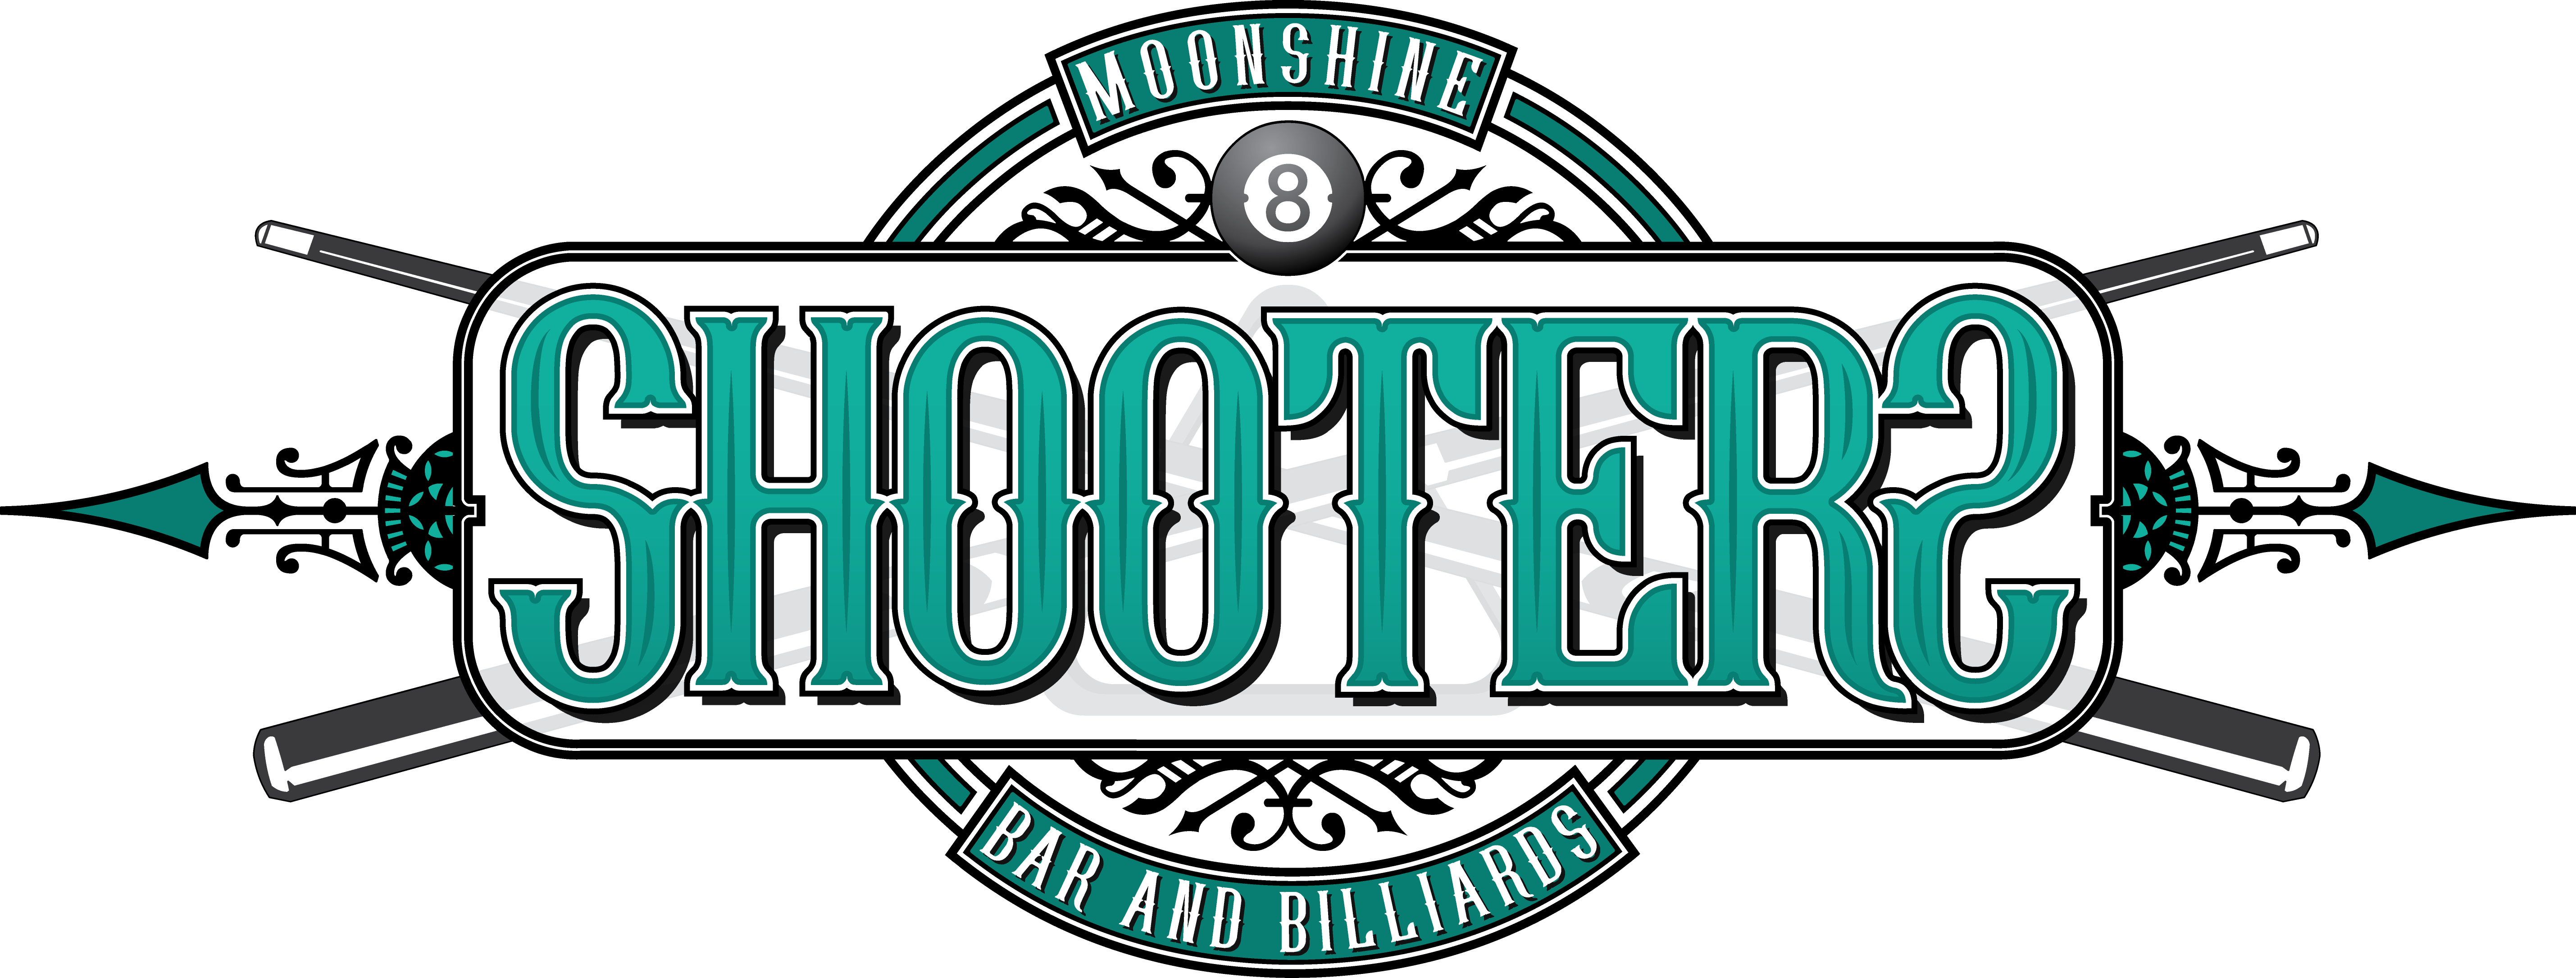 The Moonshine ShooterS